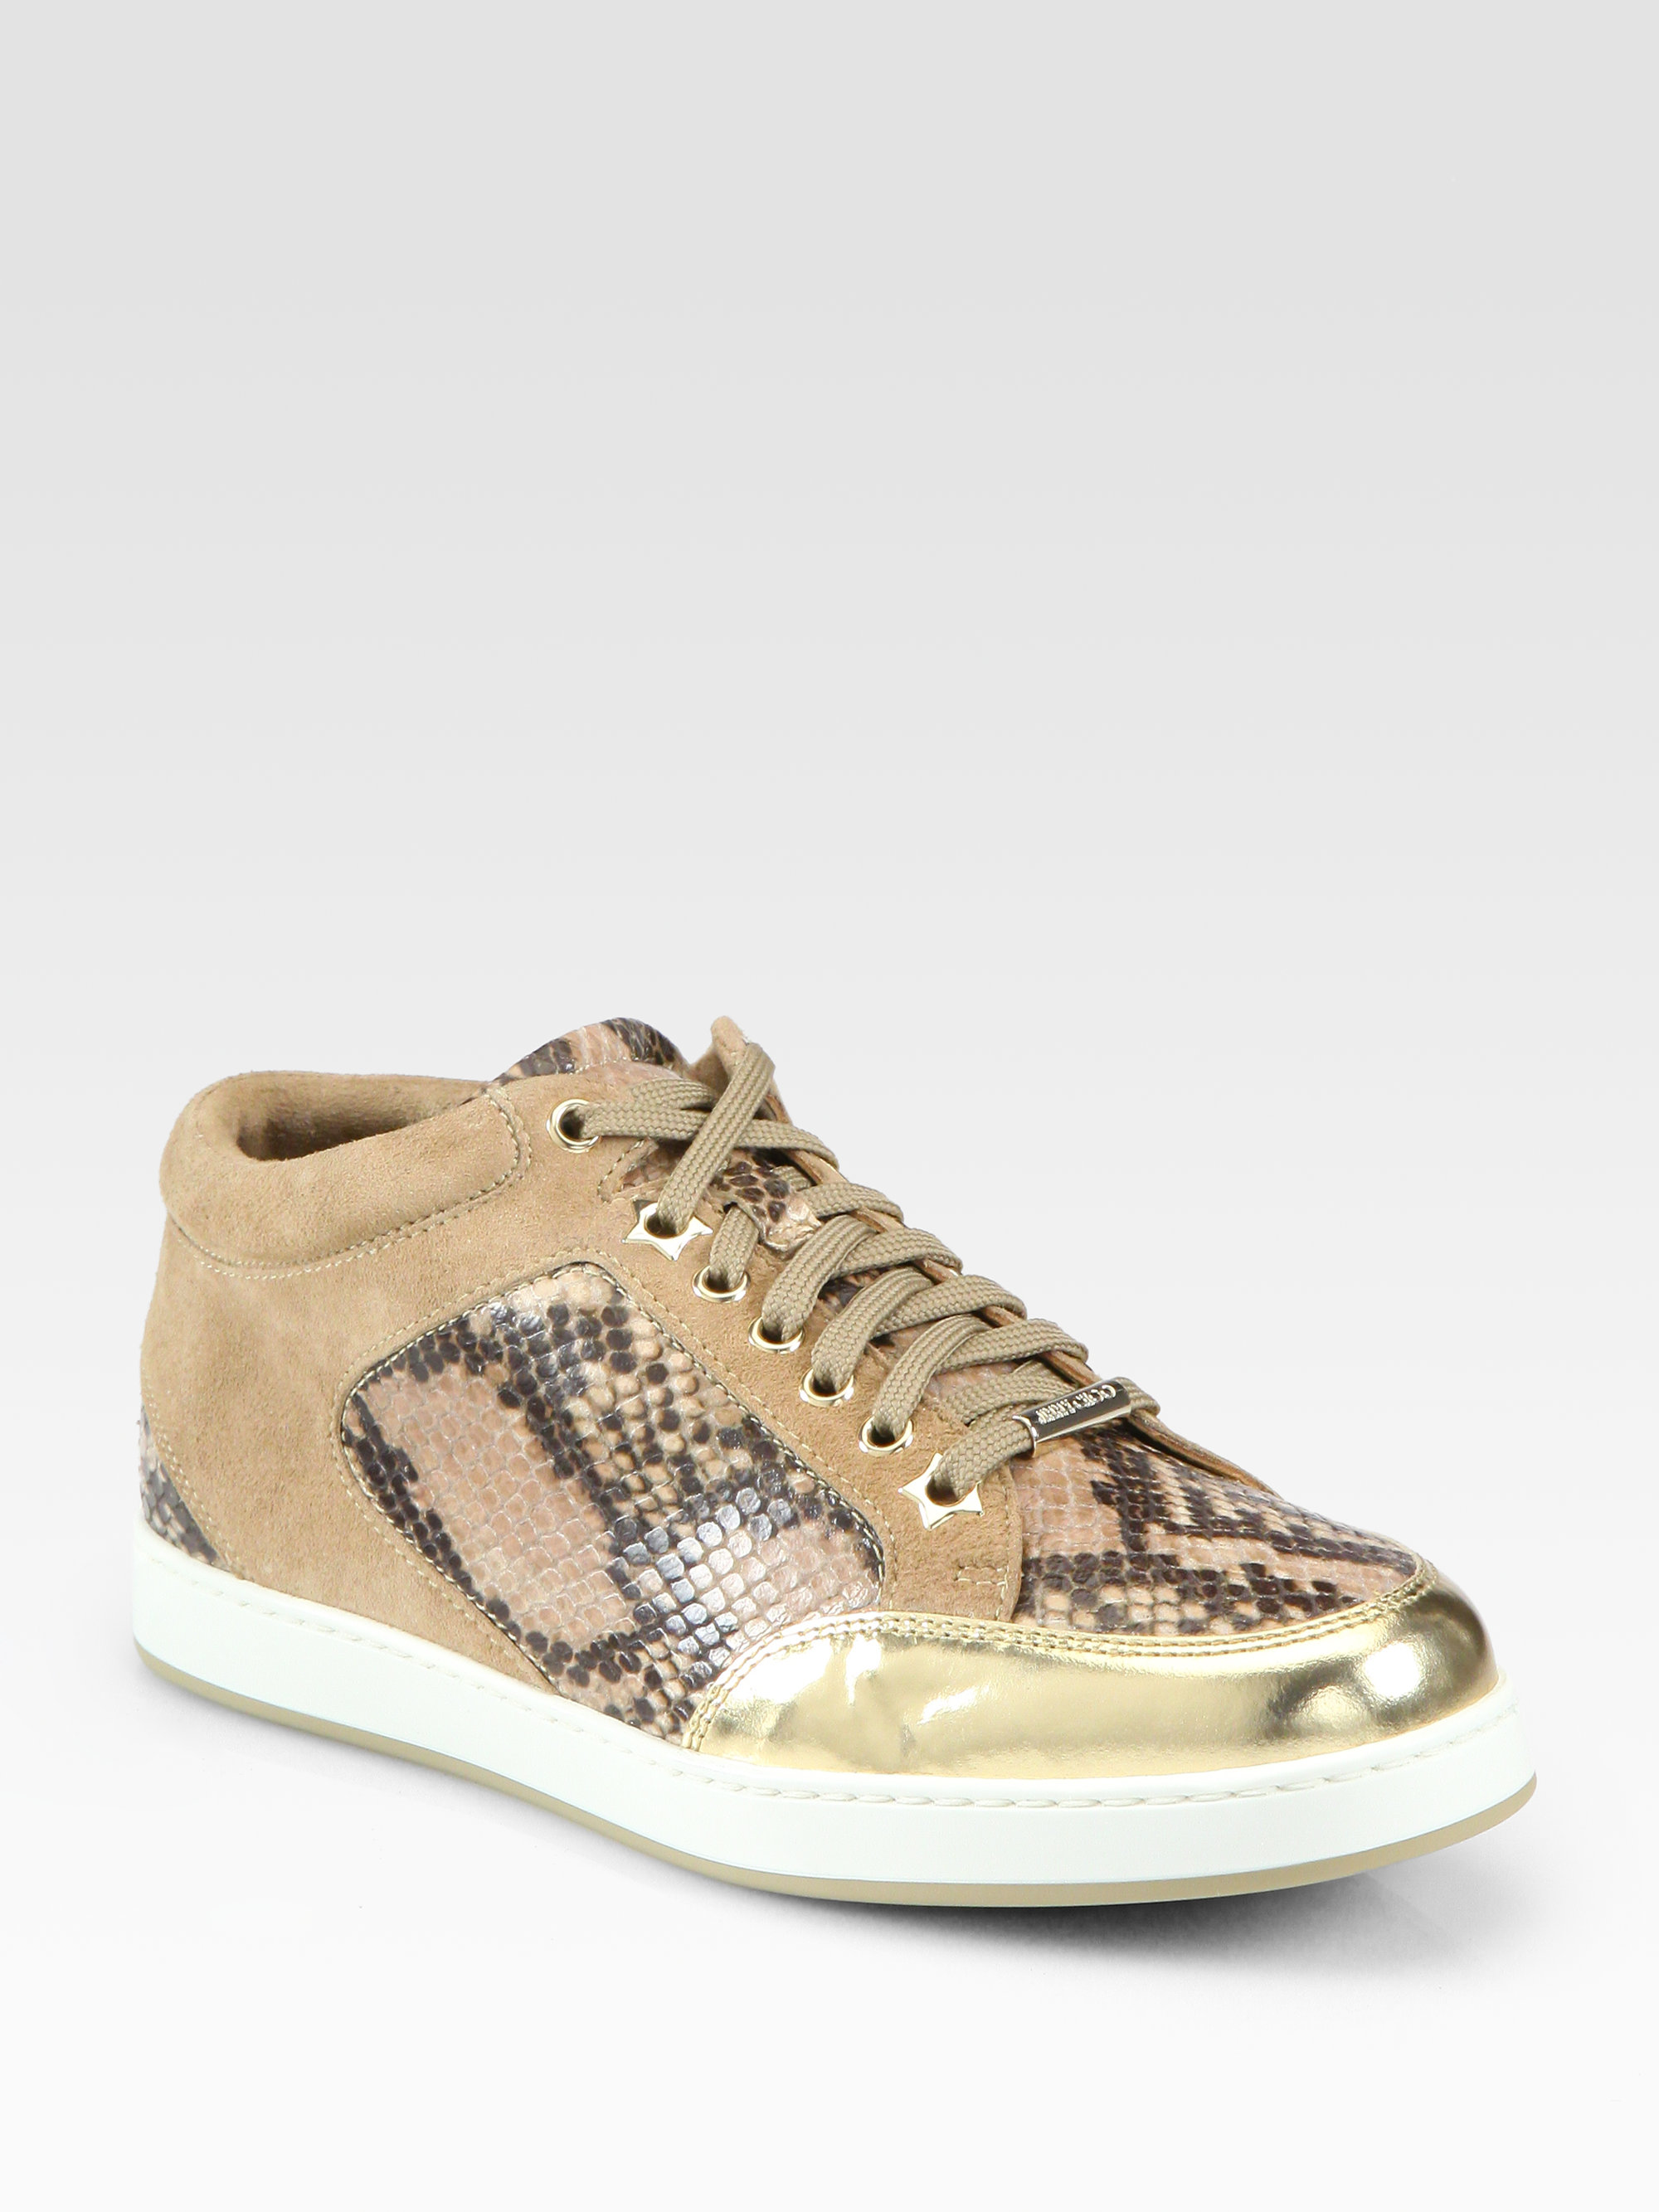 Clearance Manchester Great Sale Miami sneakers - Brown Jimmy Choo London Purchase Cheap Sale Lowest Price m4thvT